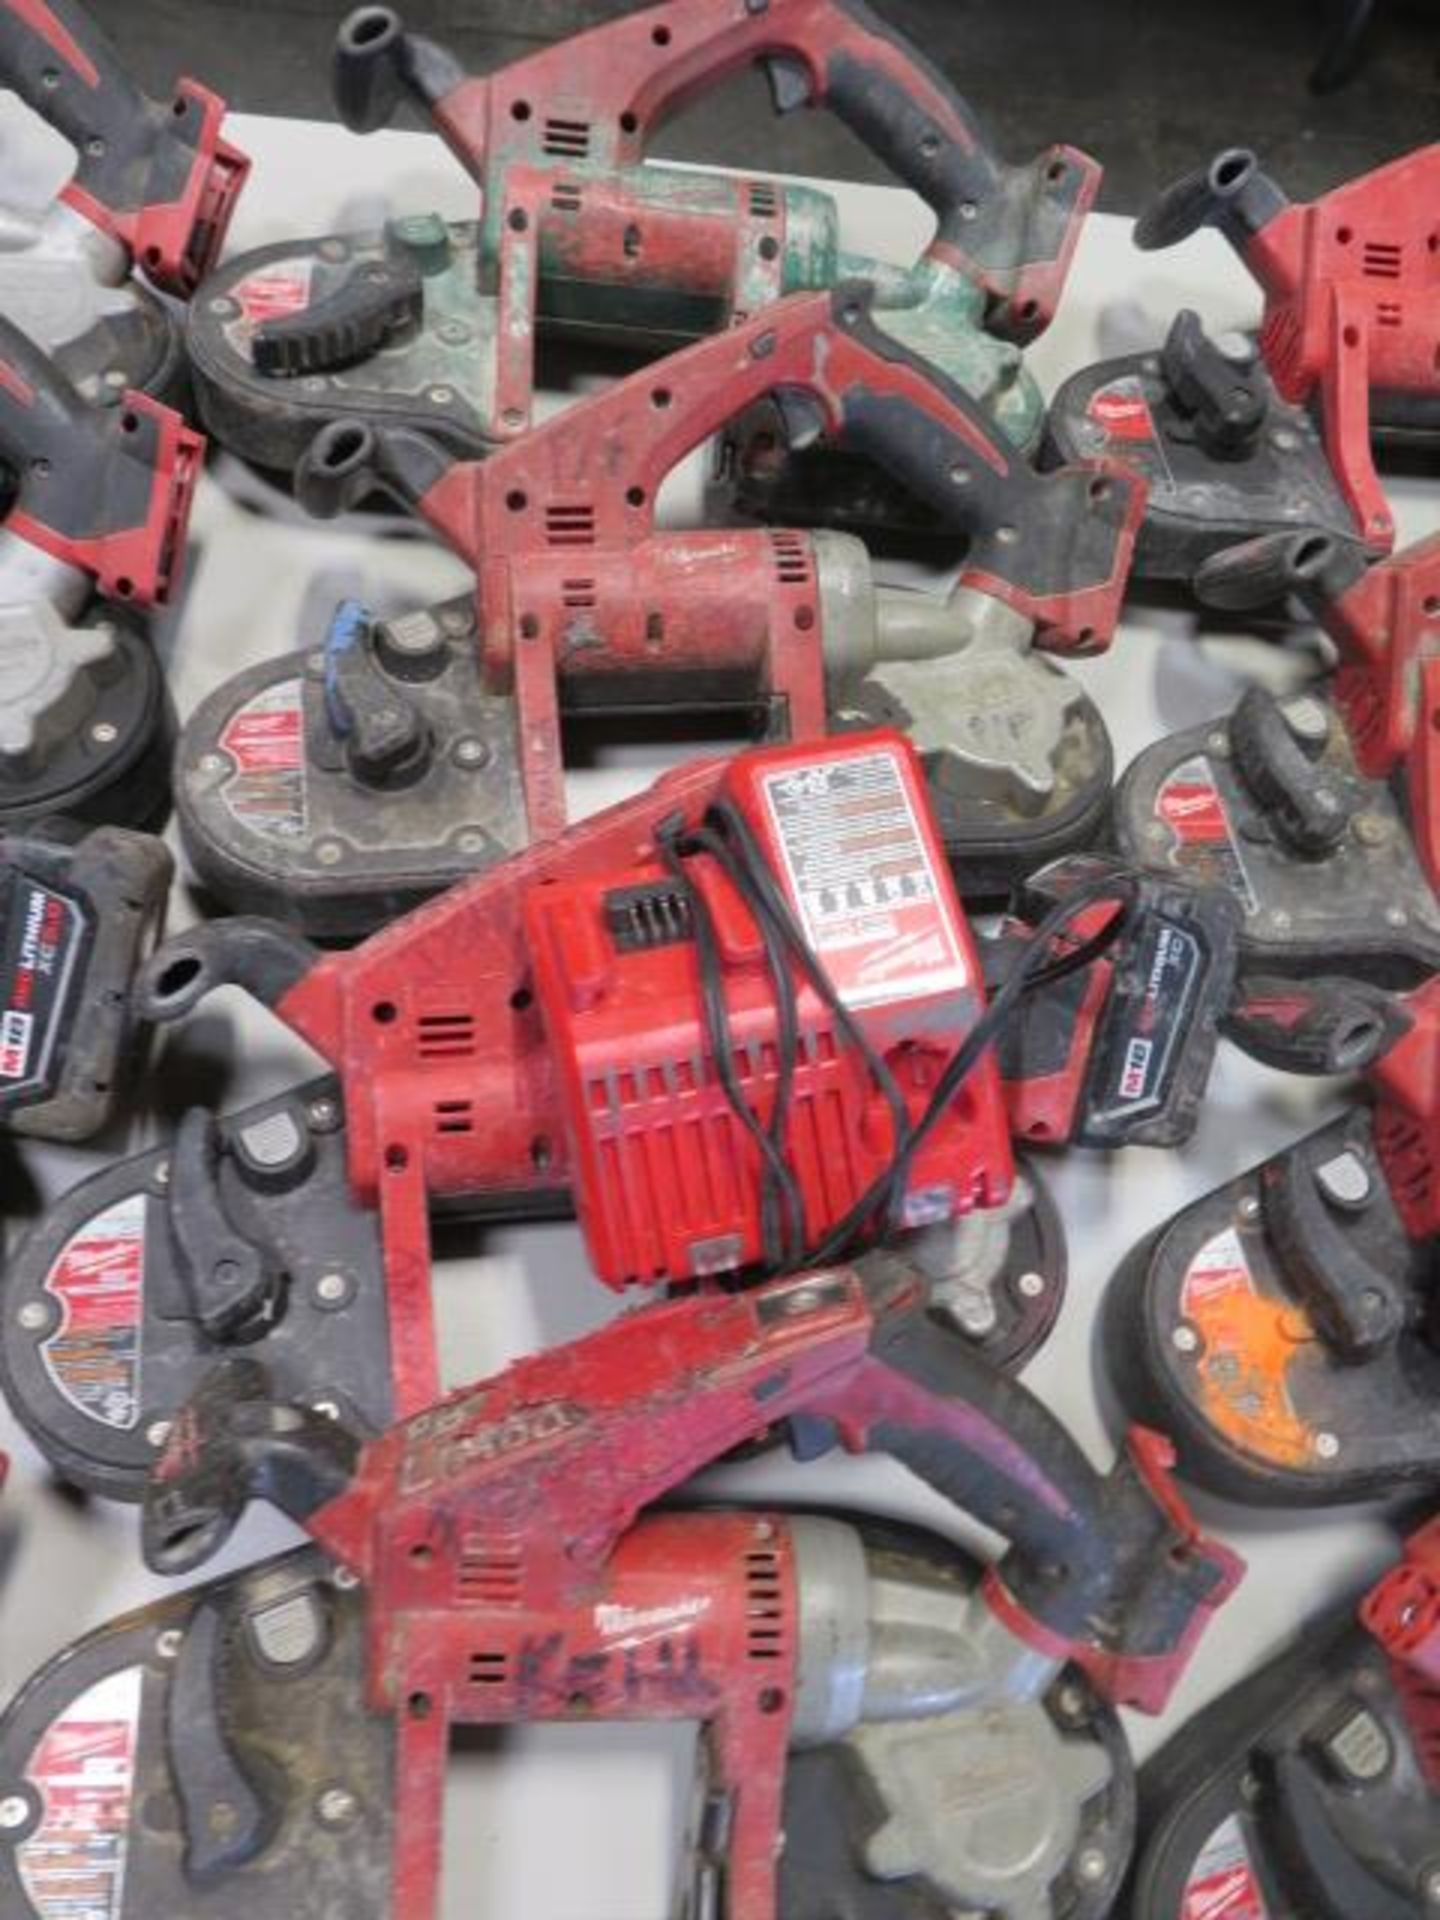 Milwaukee 18 Volt Compact Portable Band Saws (4) (SOLD AS-IS - NO WARRANTY) - Image 2 of 7